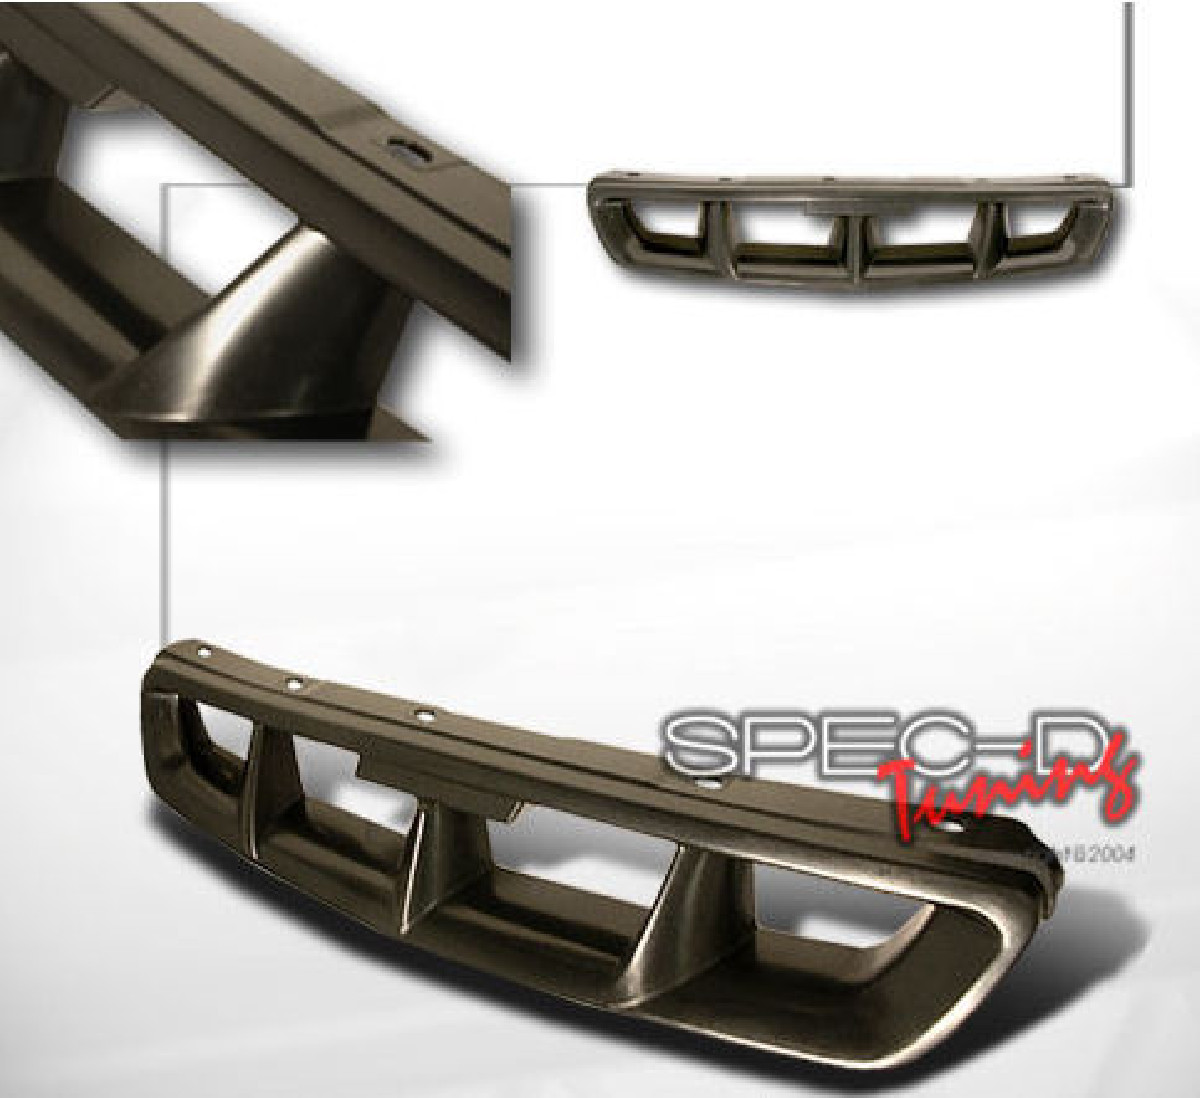 Honda Civic 96-98 Mugen Look ABS Grill